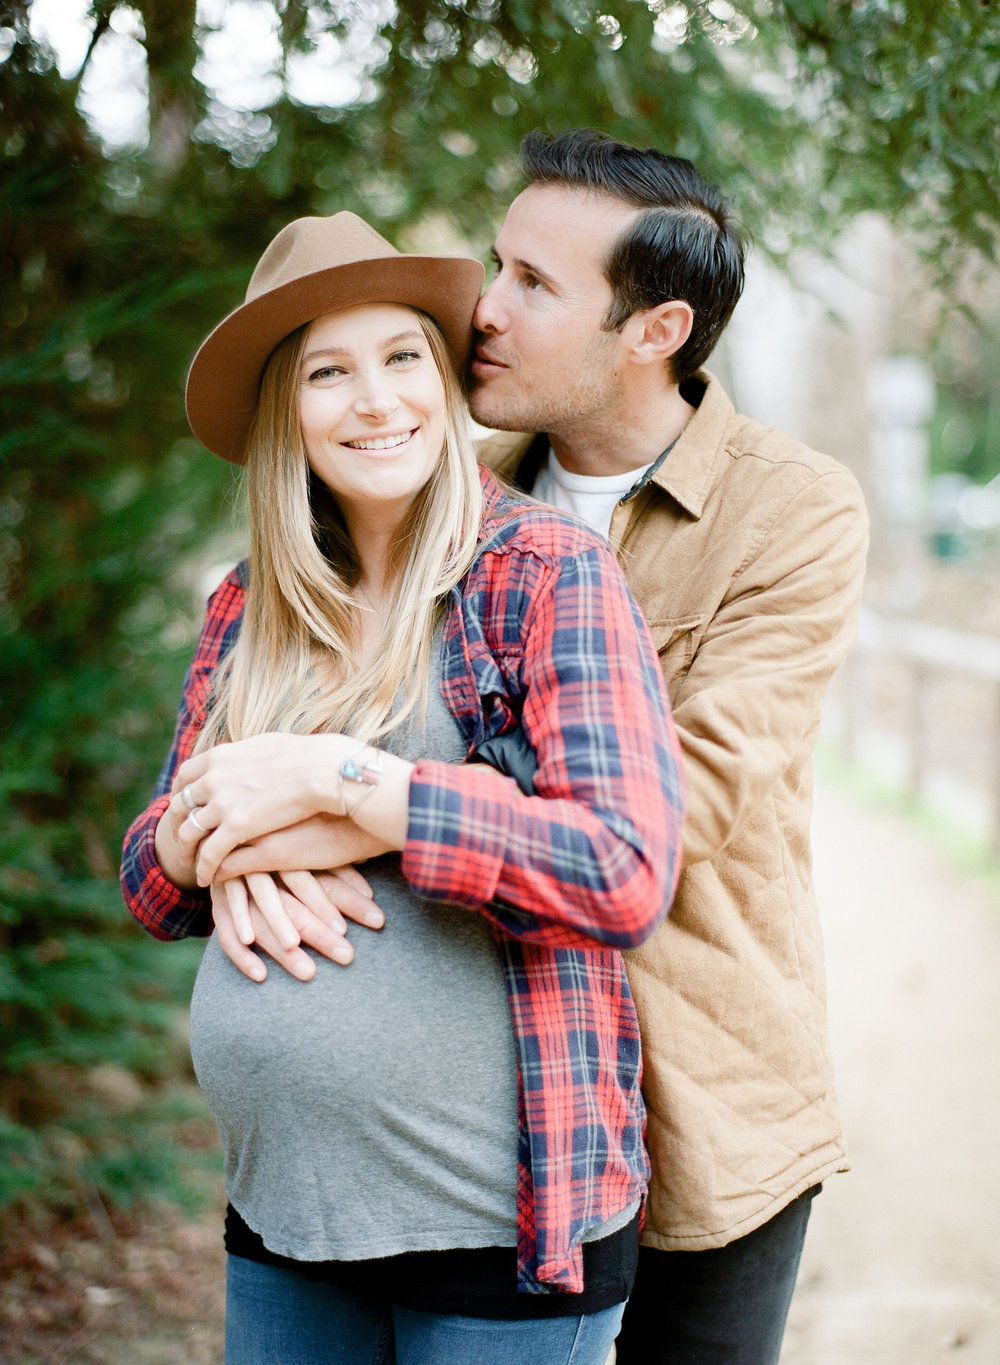 Chrissy & David Maternity Session-24.jpg